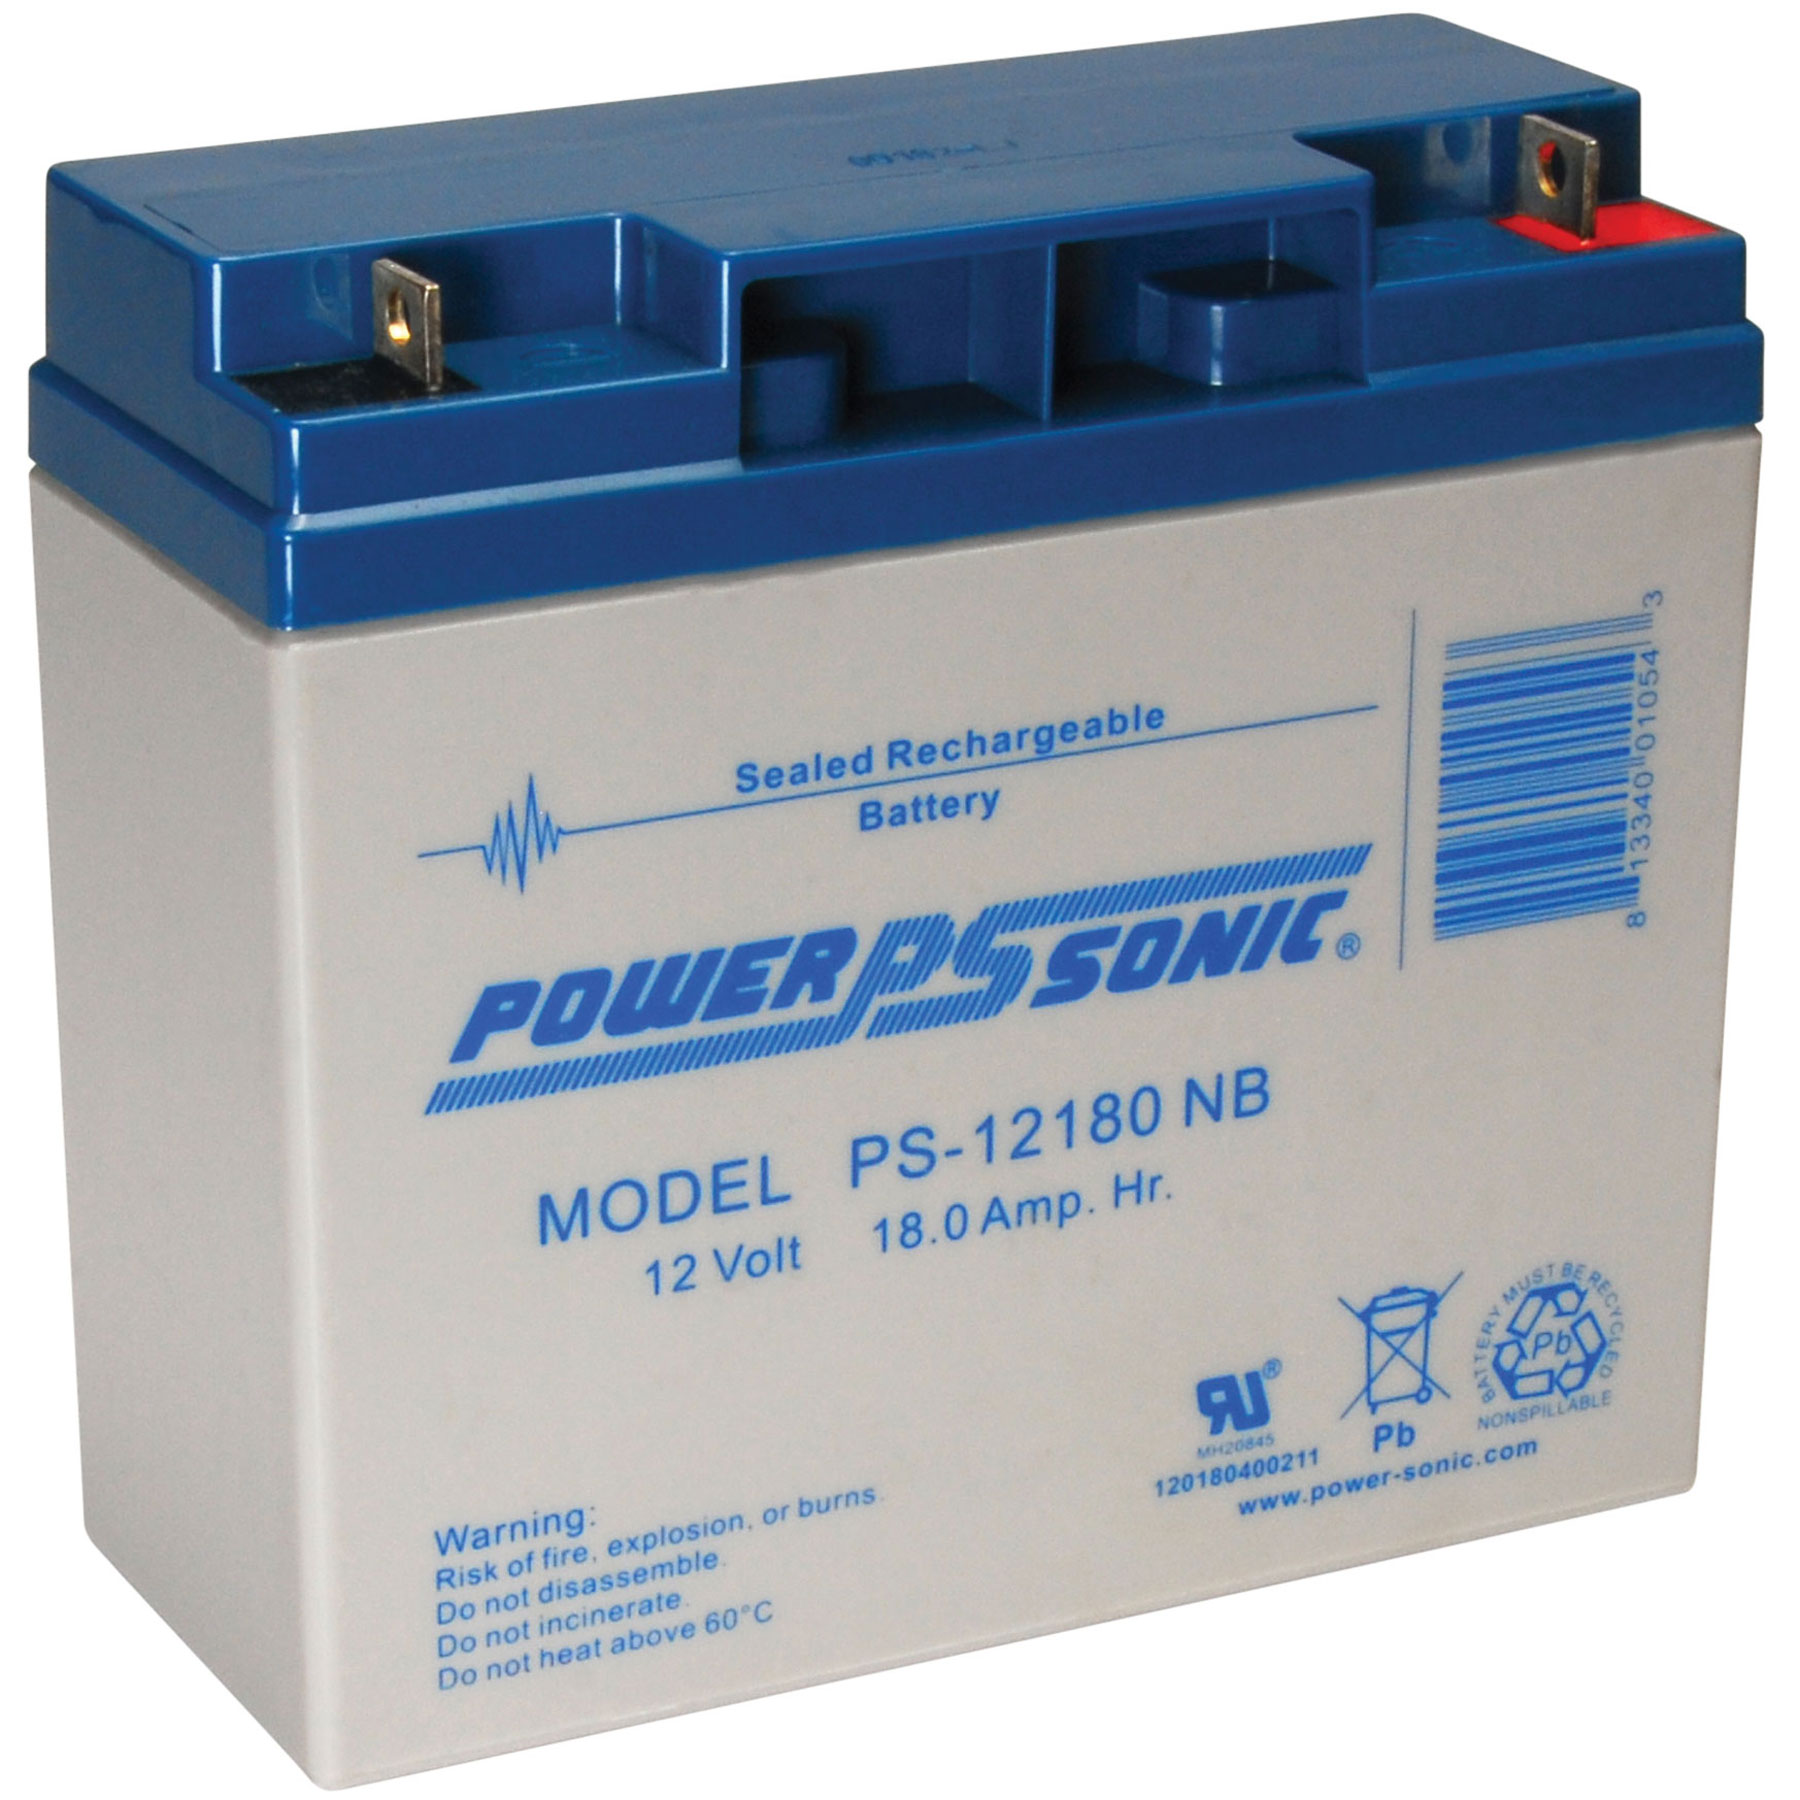 PSG PS-12180NB2 12V 18AH SEALED RECHARGEABLE BATTERY, NUT AND BOLT